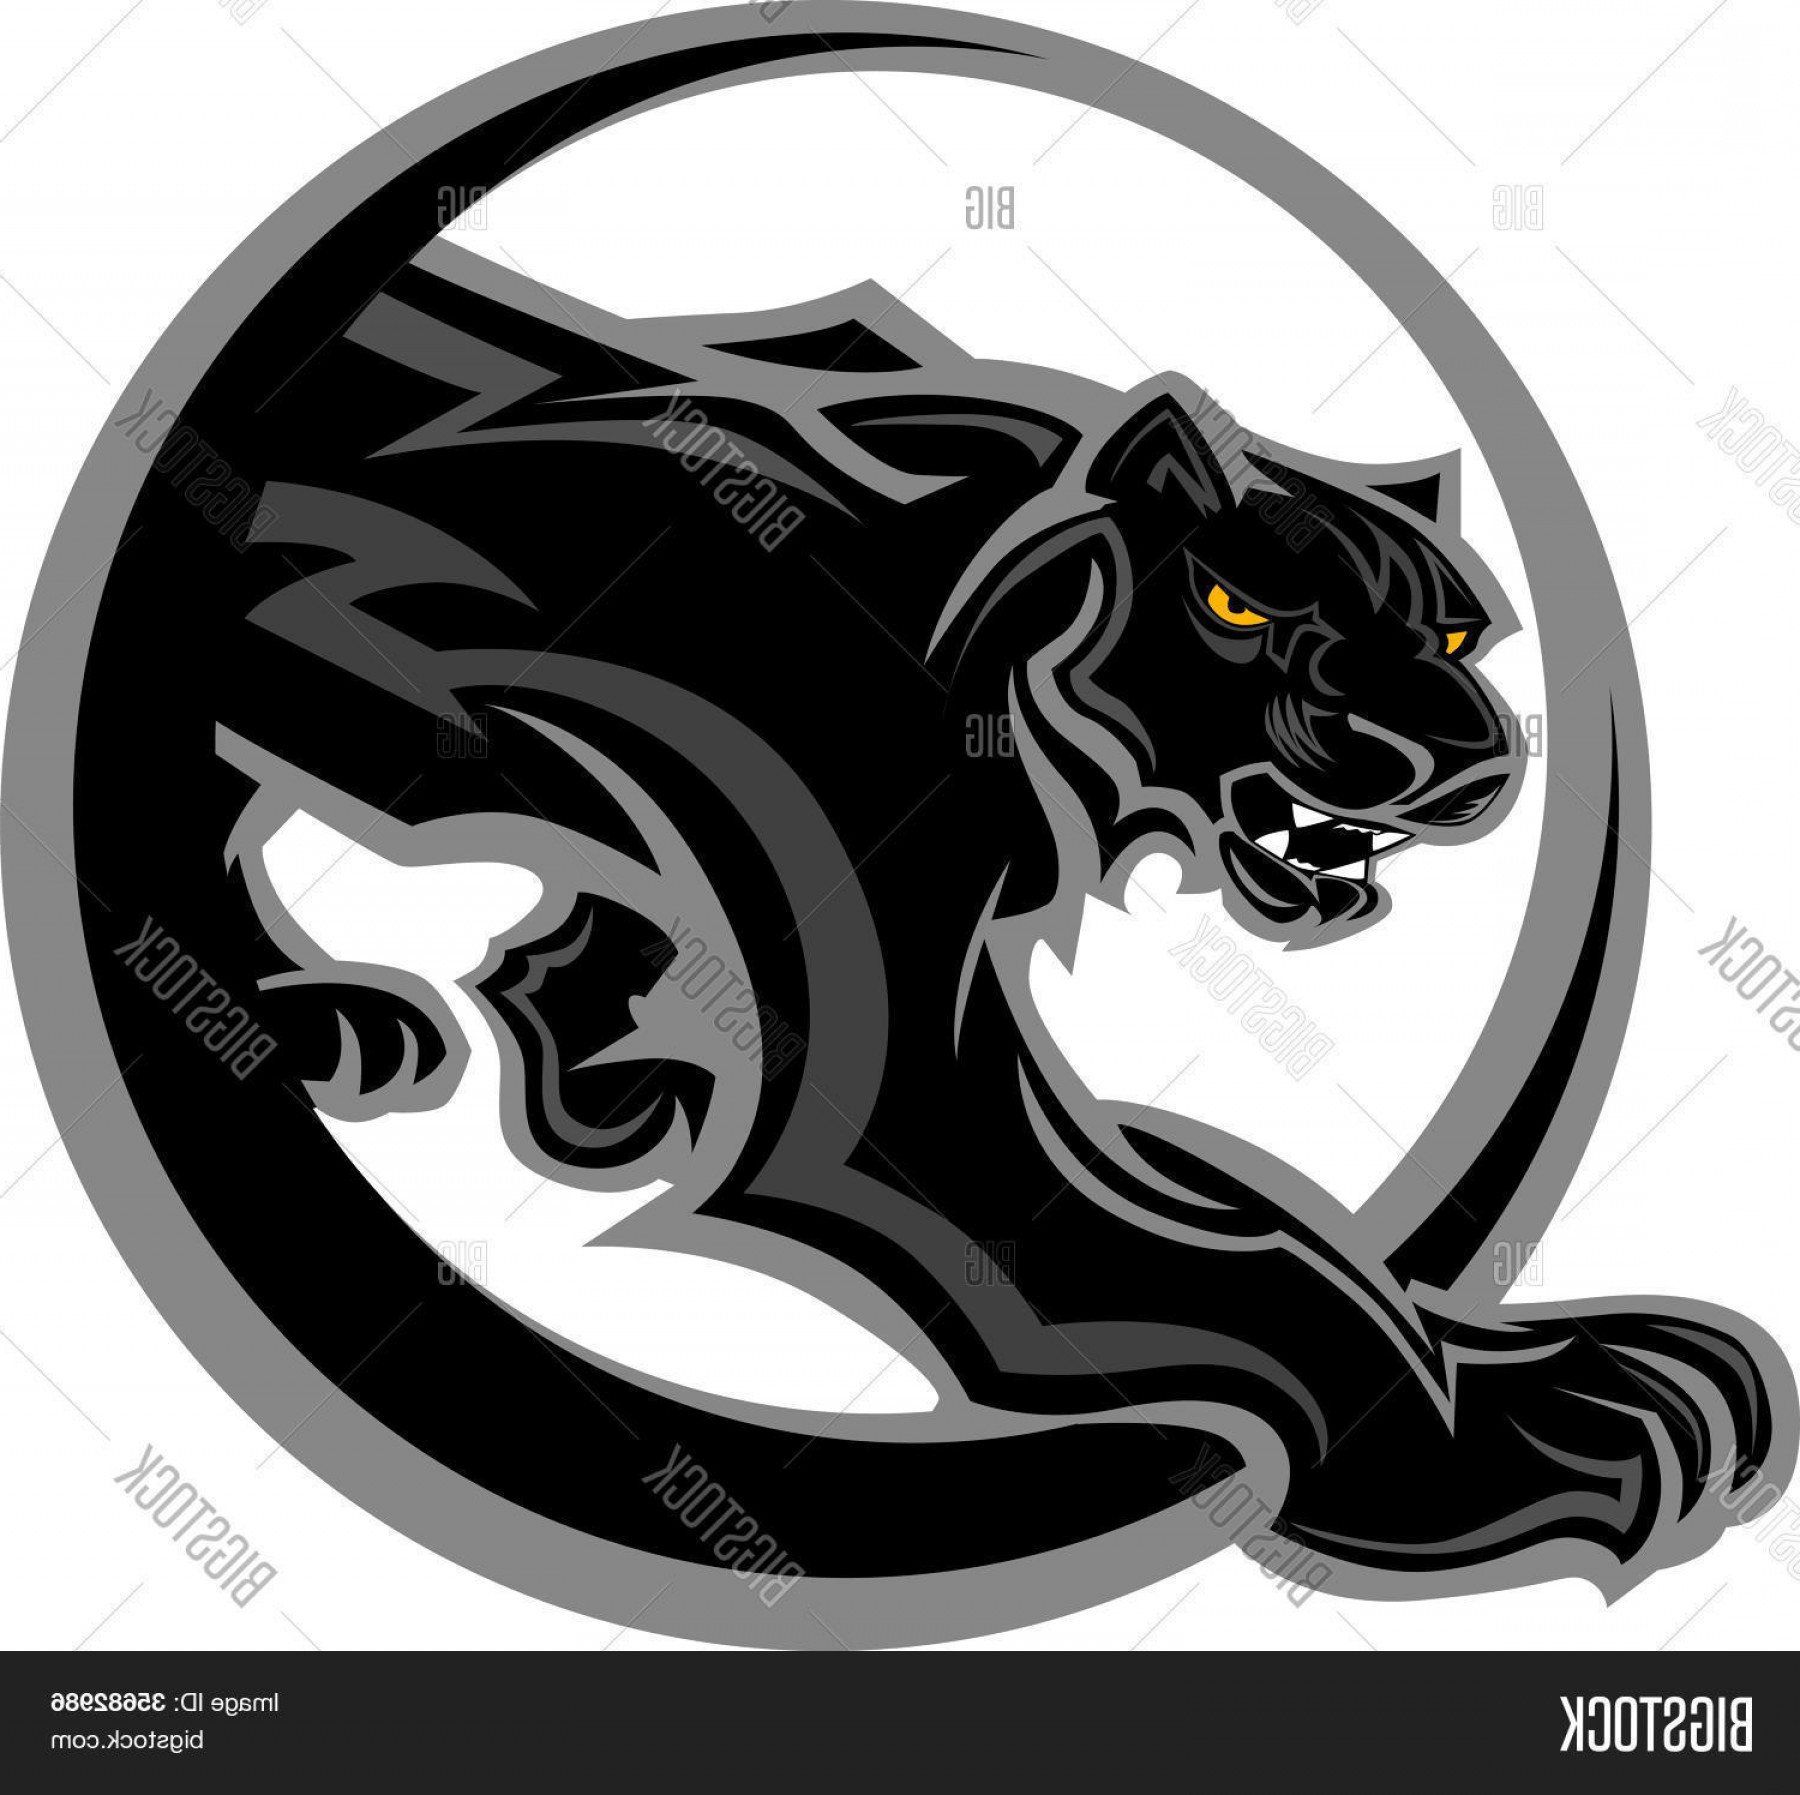 Panther Mascot Vector Sports: Stock Vector Panther Mascot Body Vector Graphic